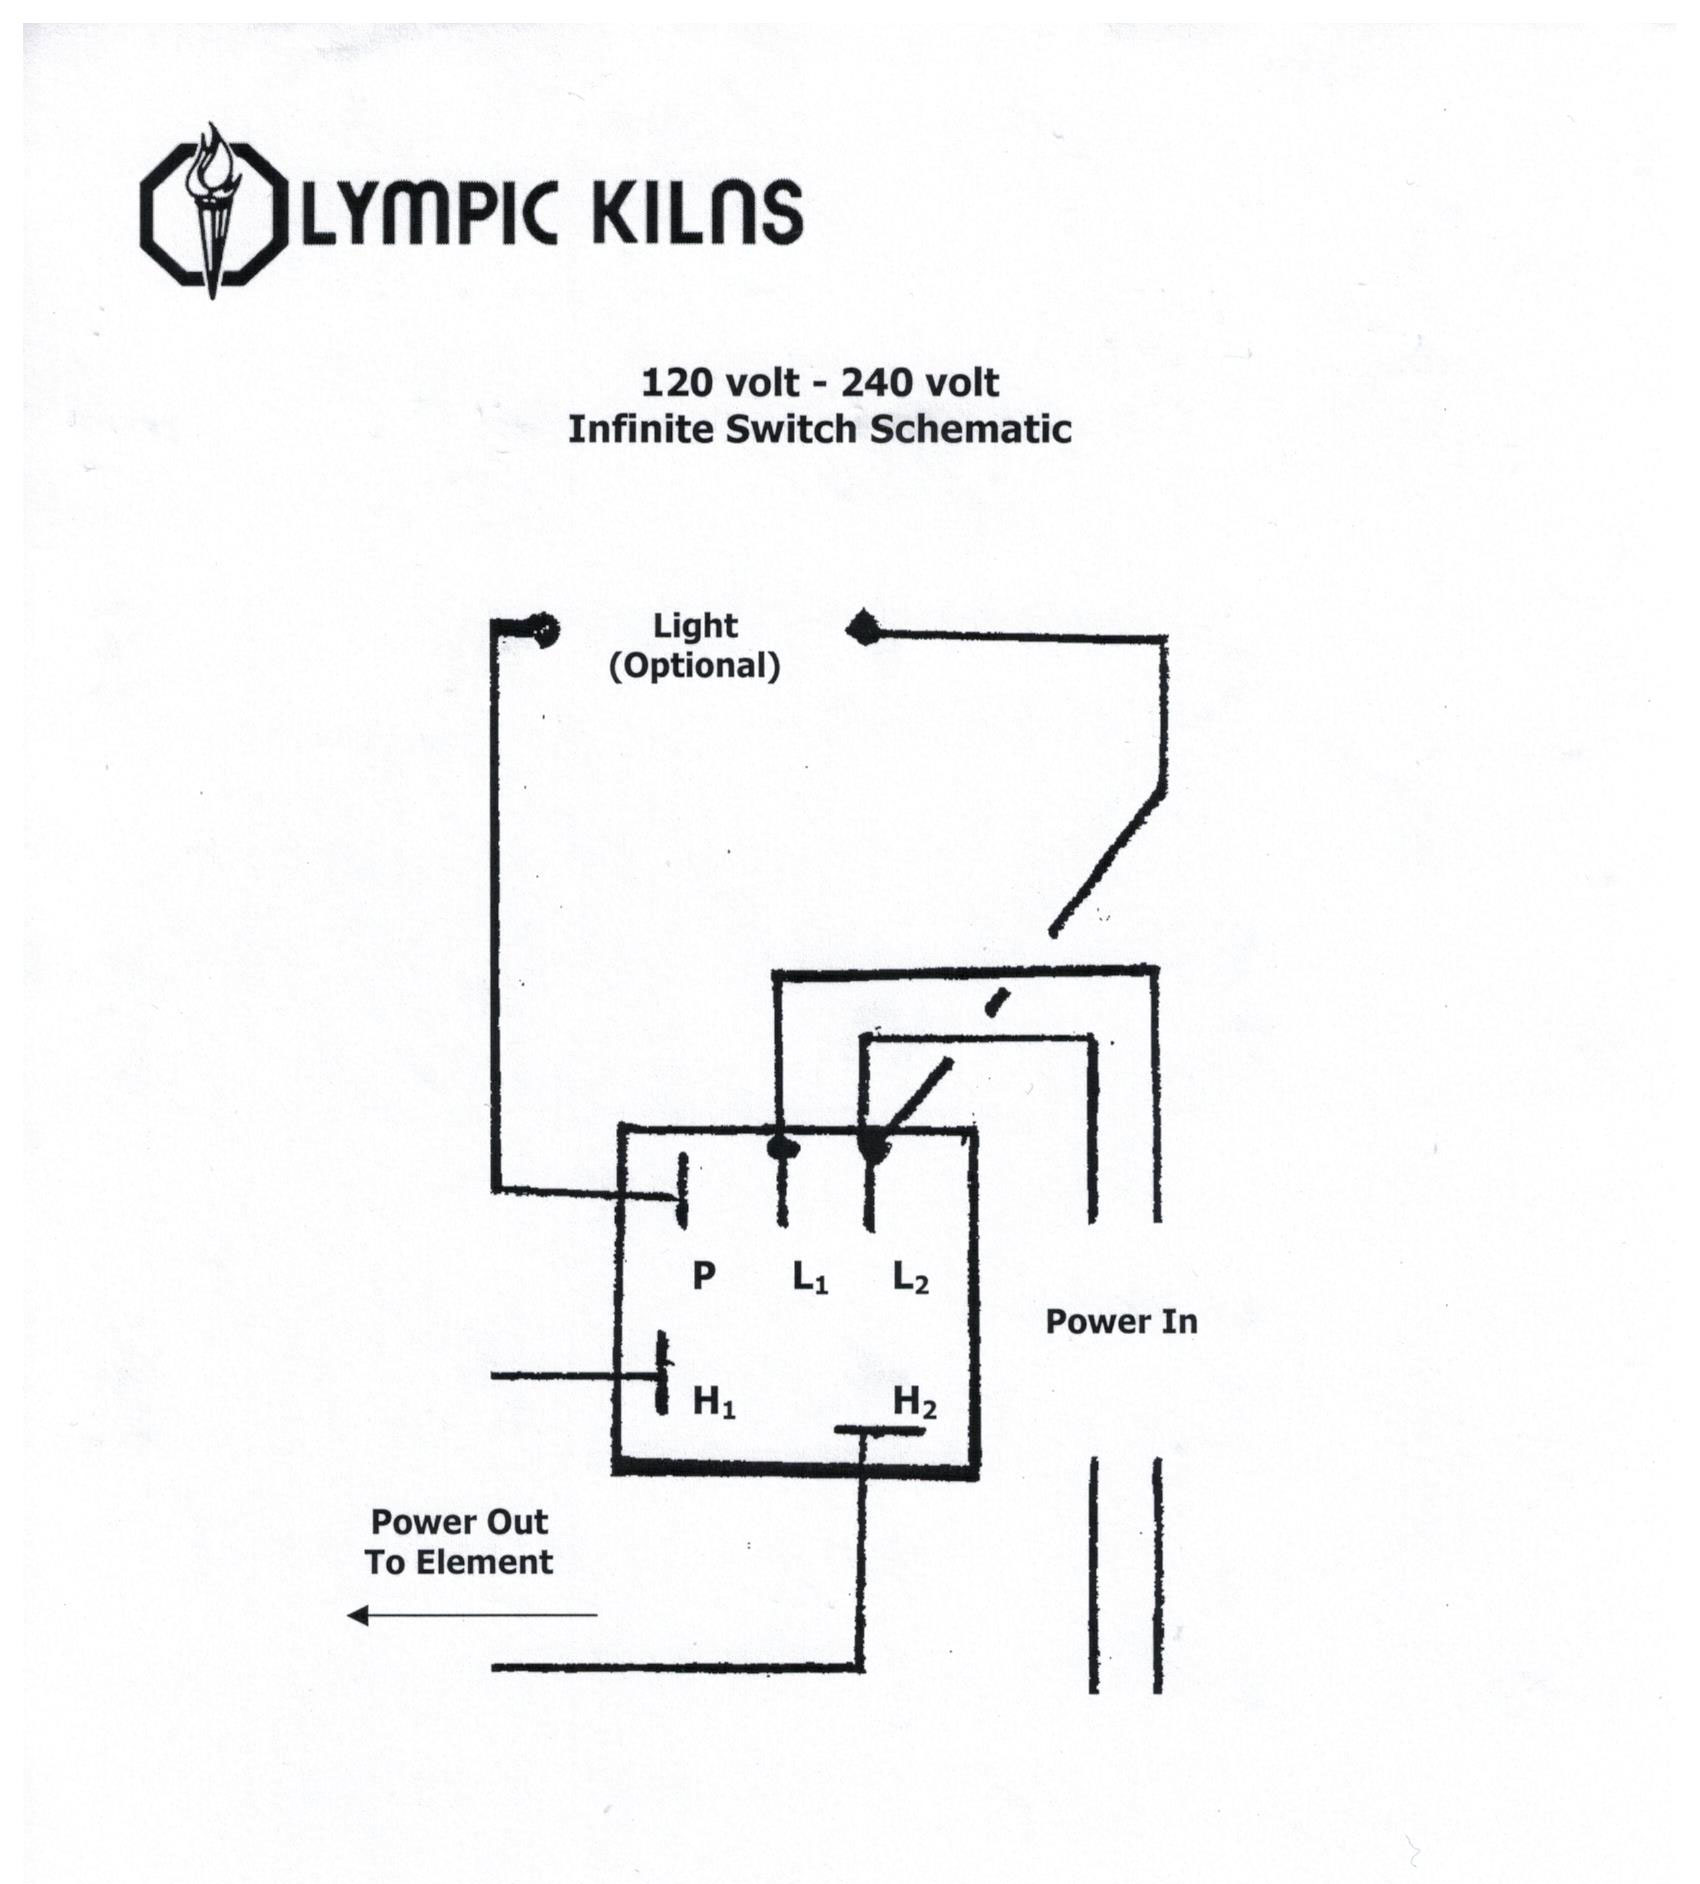 infinite switch best olympic kiln replacement elements clay king com kiln wiring diagram at panicattacktreatment.co